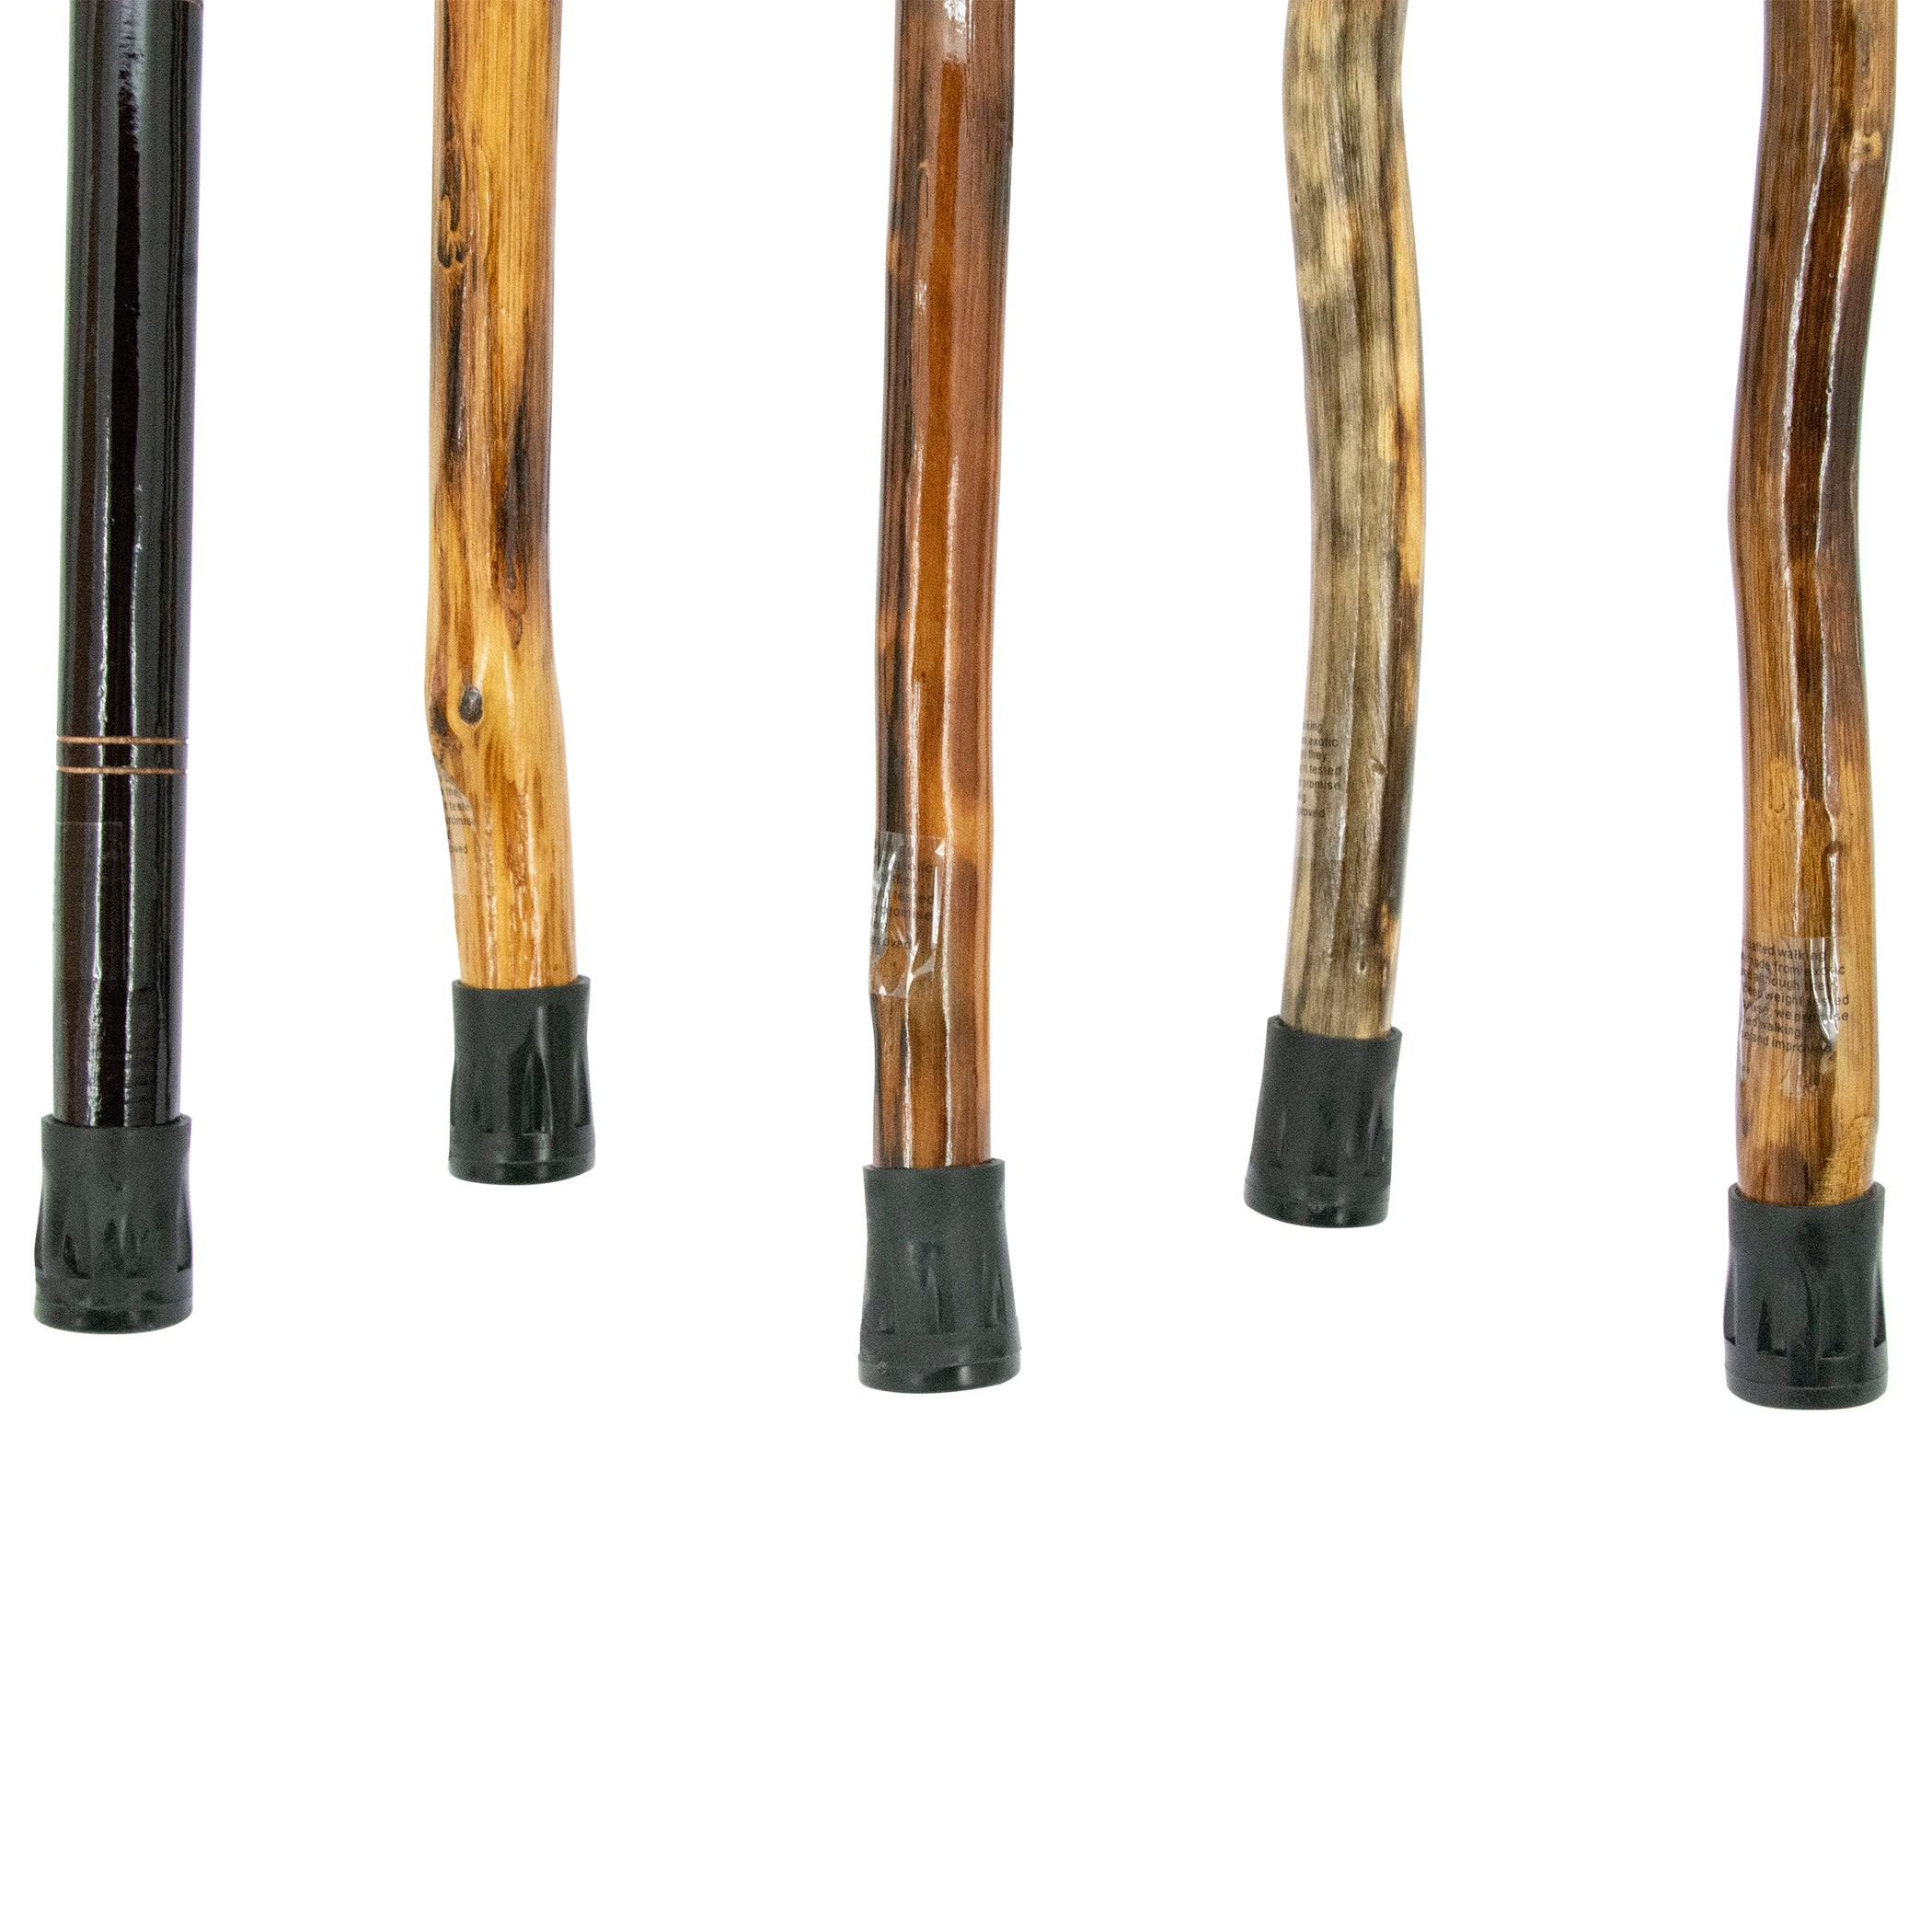 Walking Stick & Cane Assortment